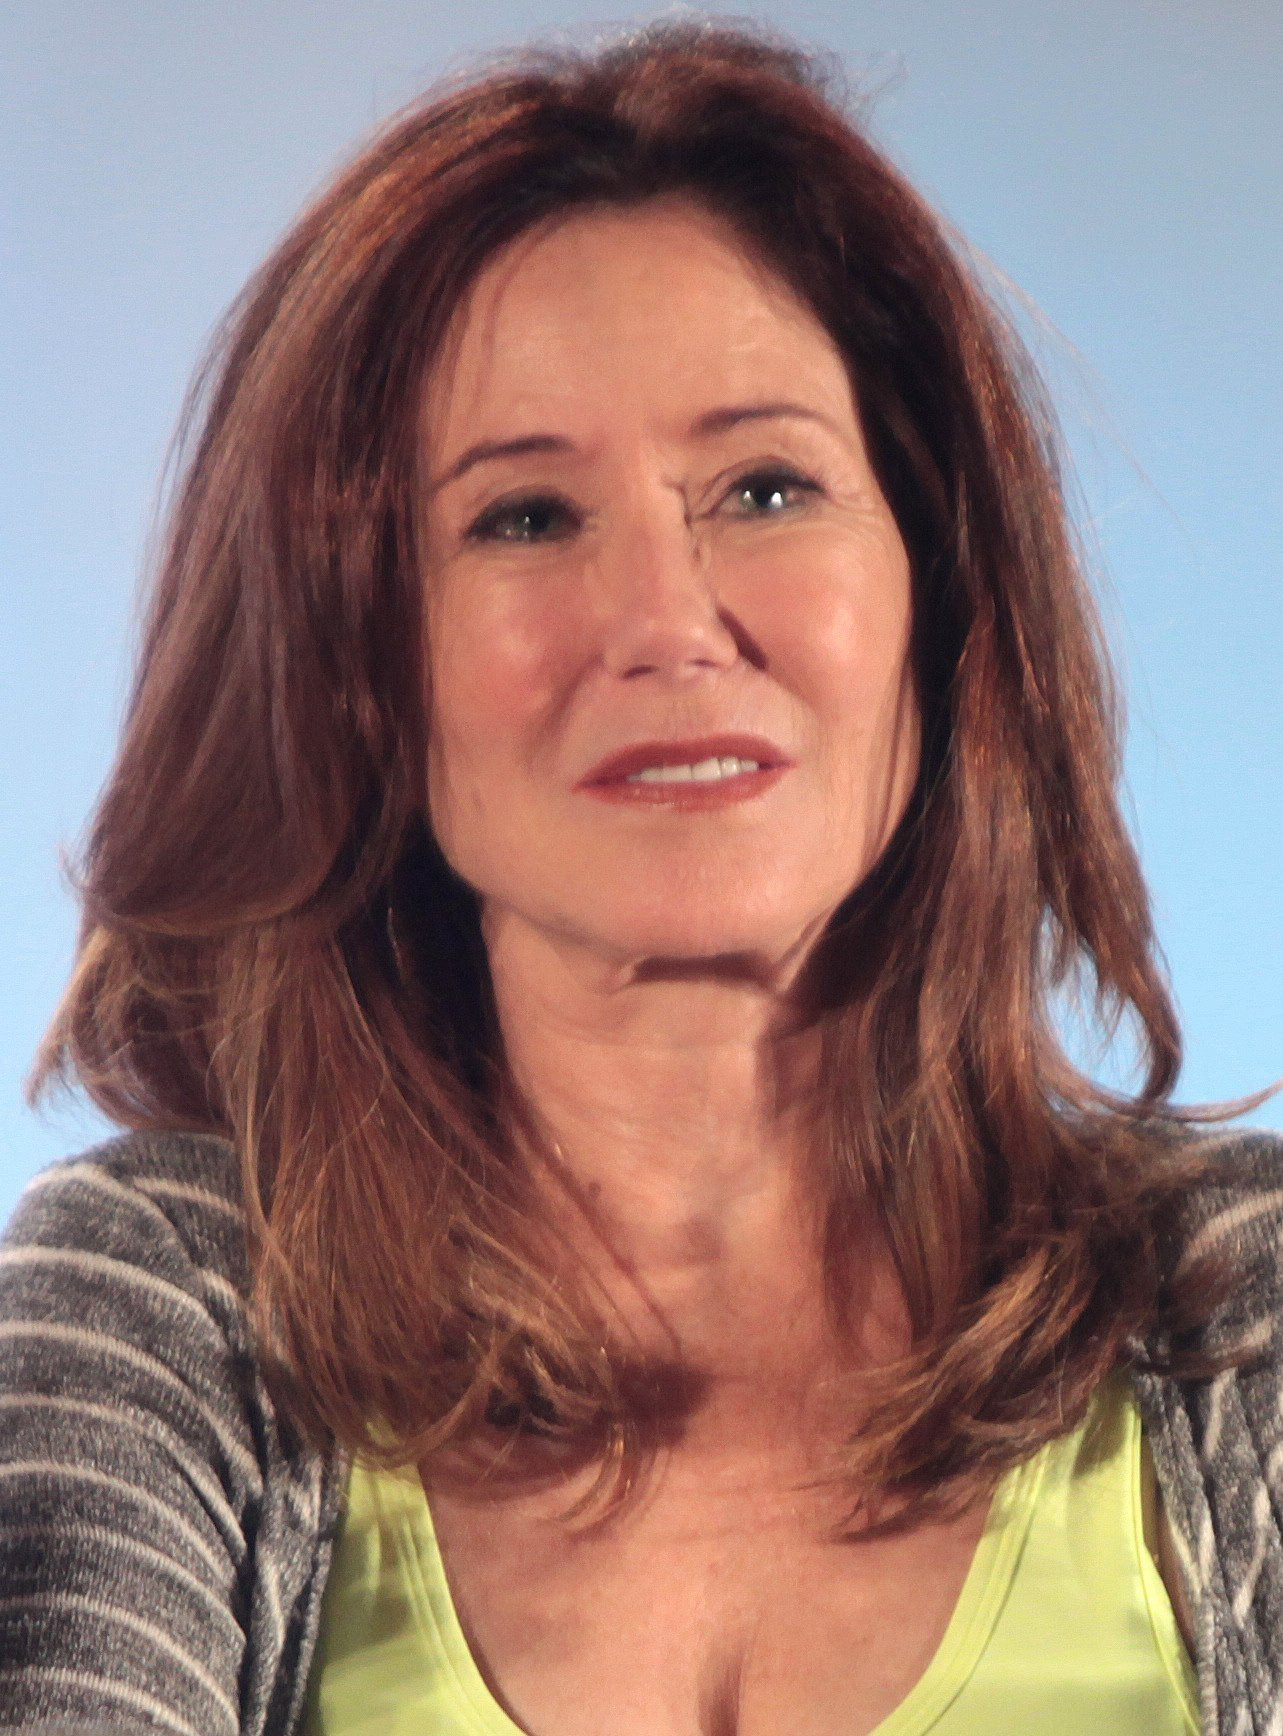 Mary McDonnell at the 2015 Phoenix Comicon at the Phoenix Convention Center in Phoenix, Arizona. | Source: Wikimedia Commons